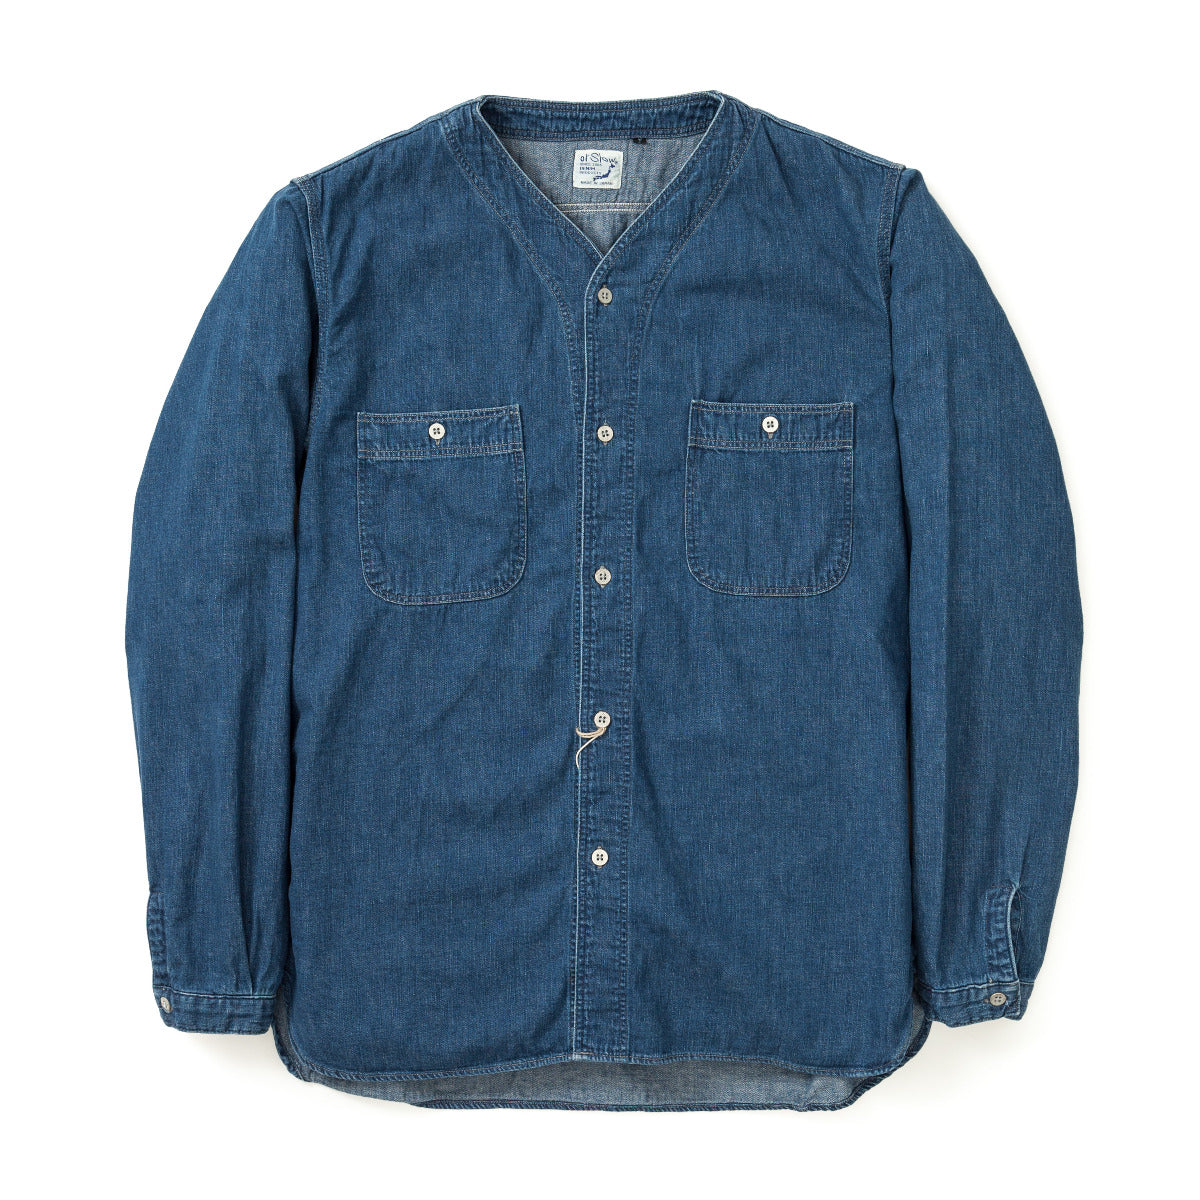 No Collar 6oz Denim Shirt